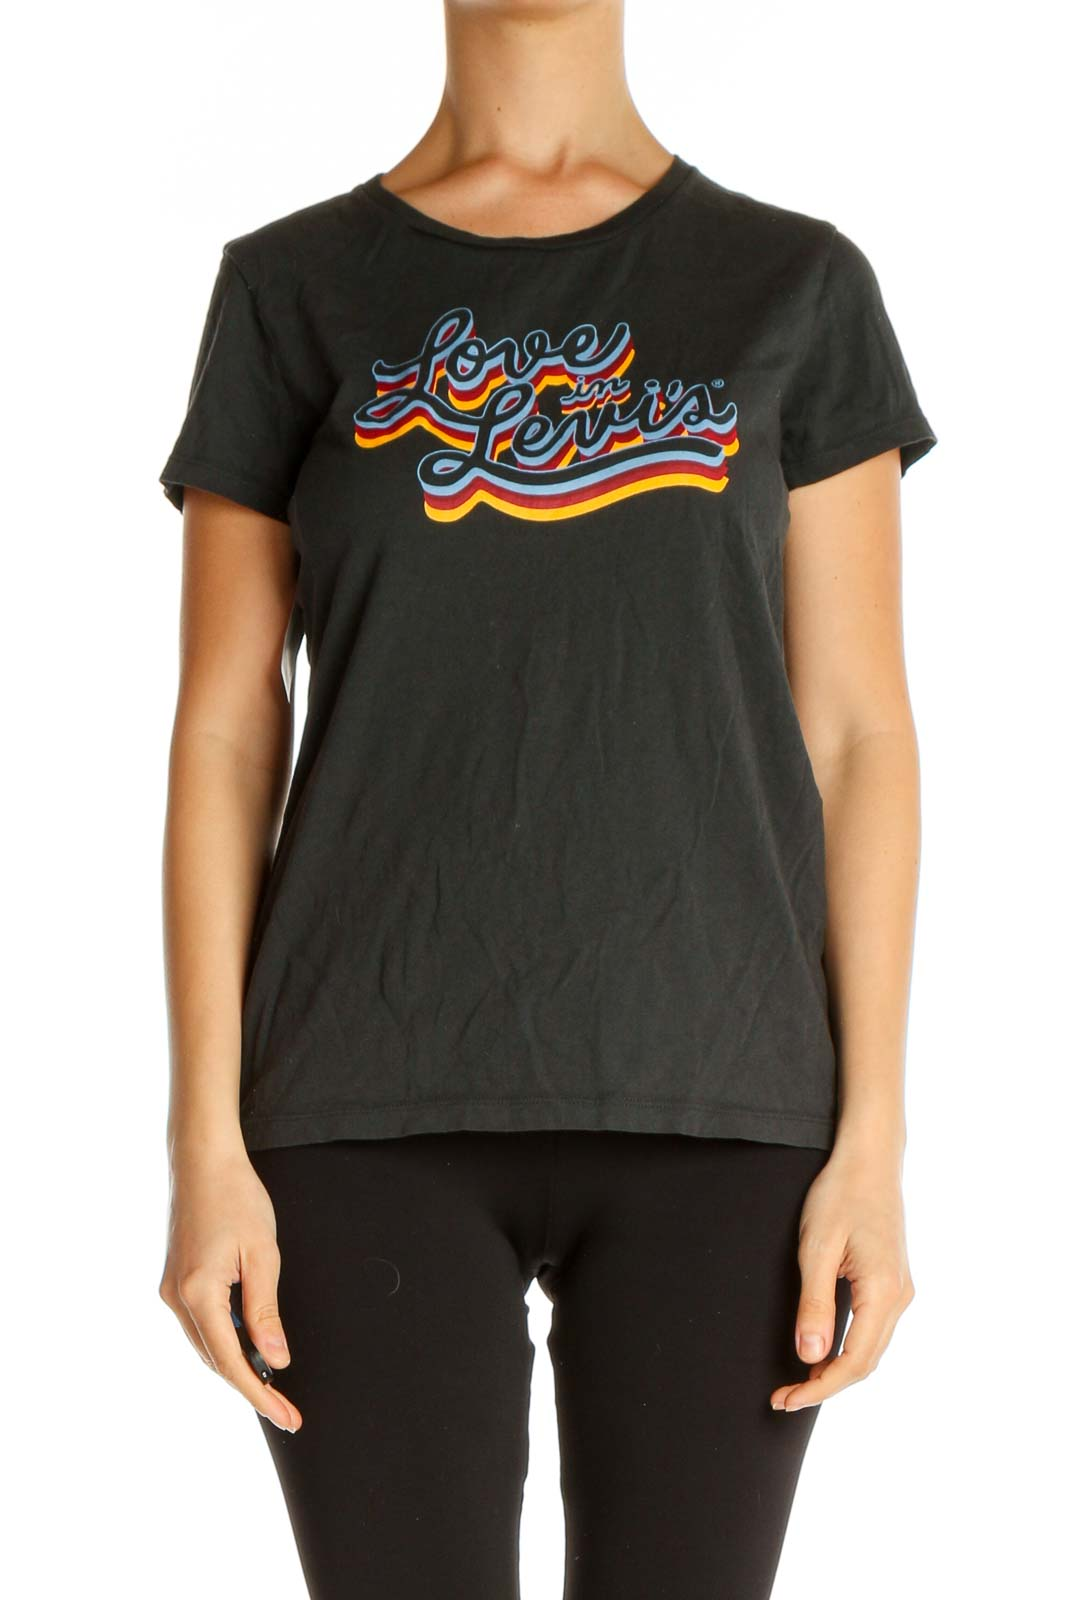 Black Graphic Print All Day Wear T-Shirt Front